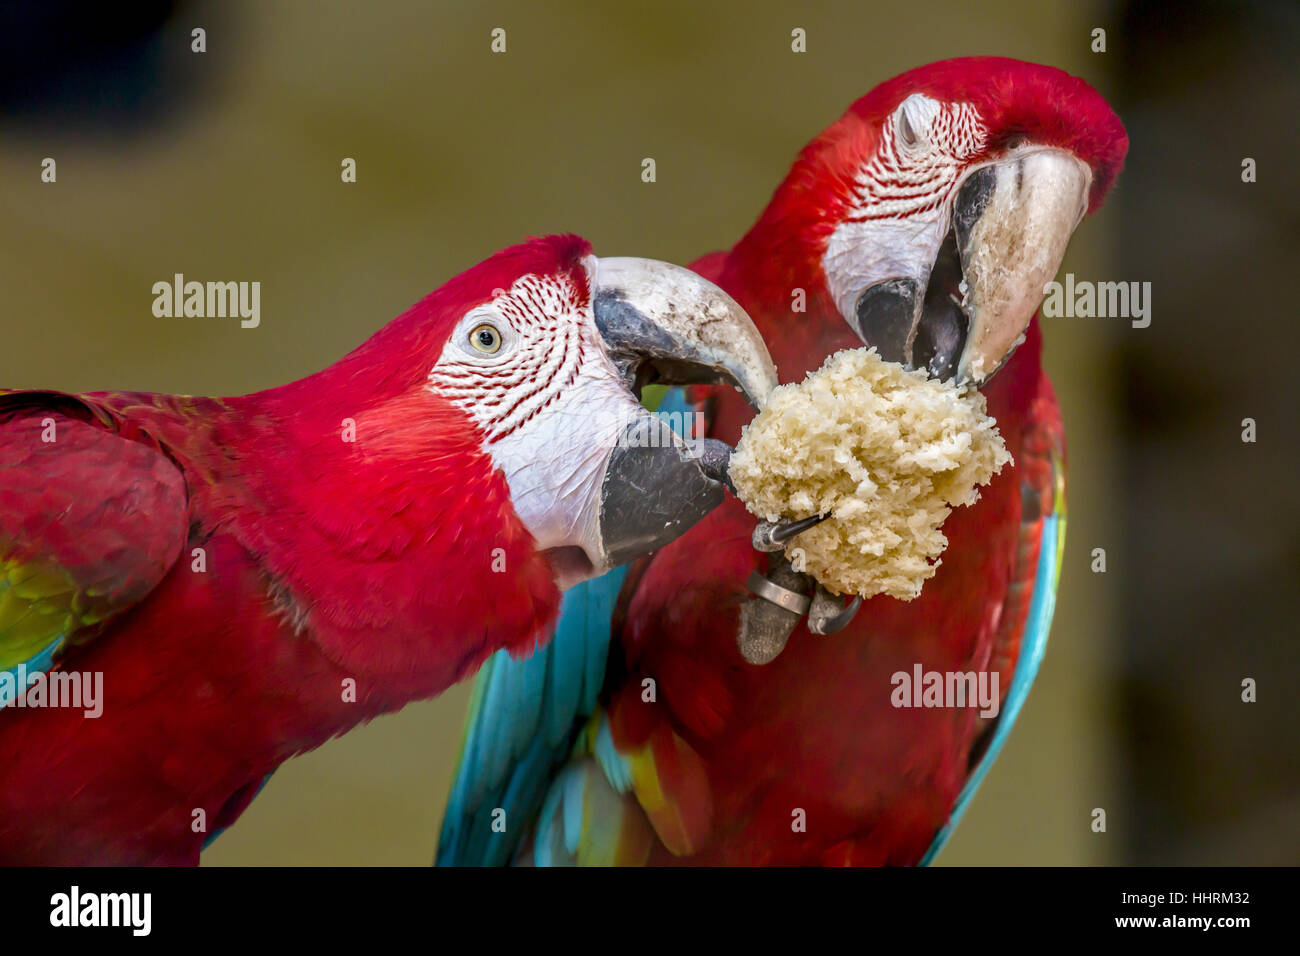 Scarlet macaw birds share food at a bird sanctuary in India. Closeup portrait shot of the macaw birds. - Stock Image